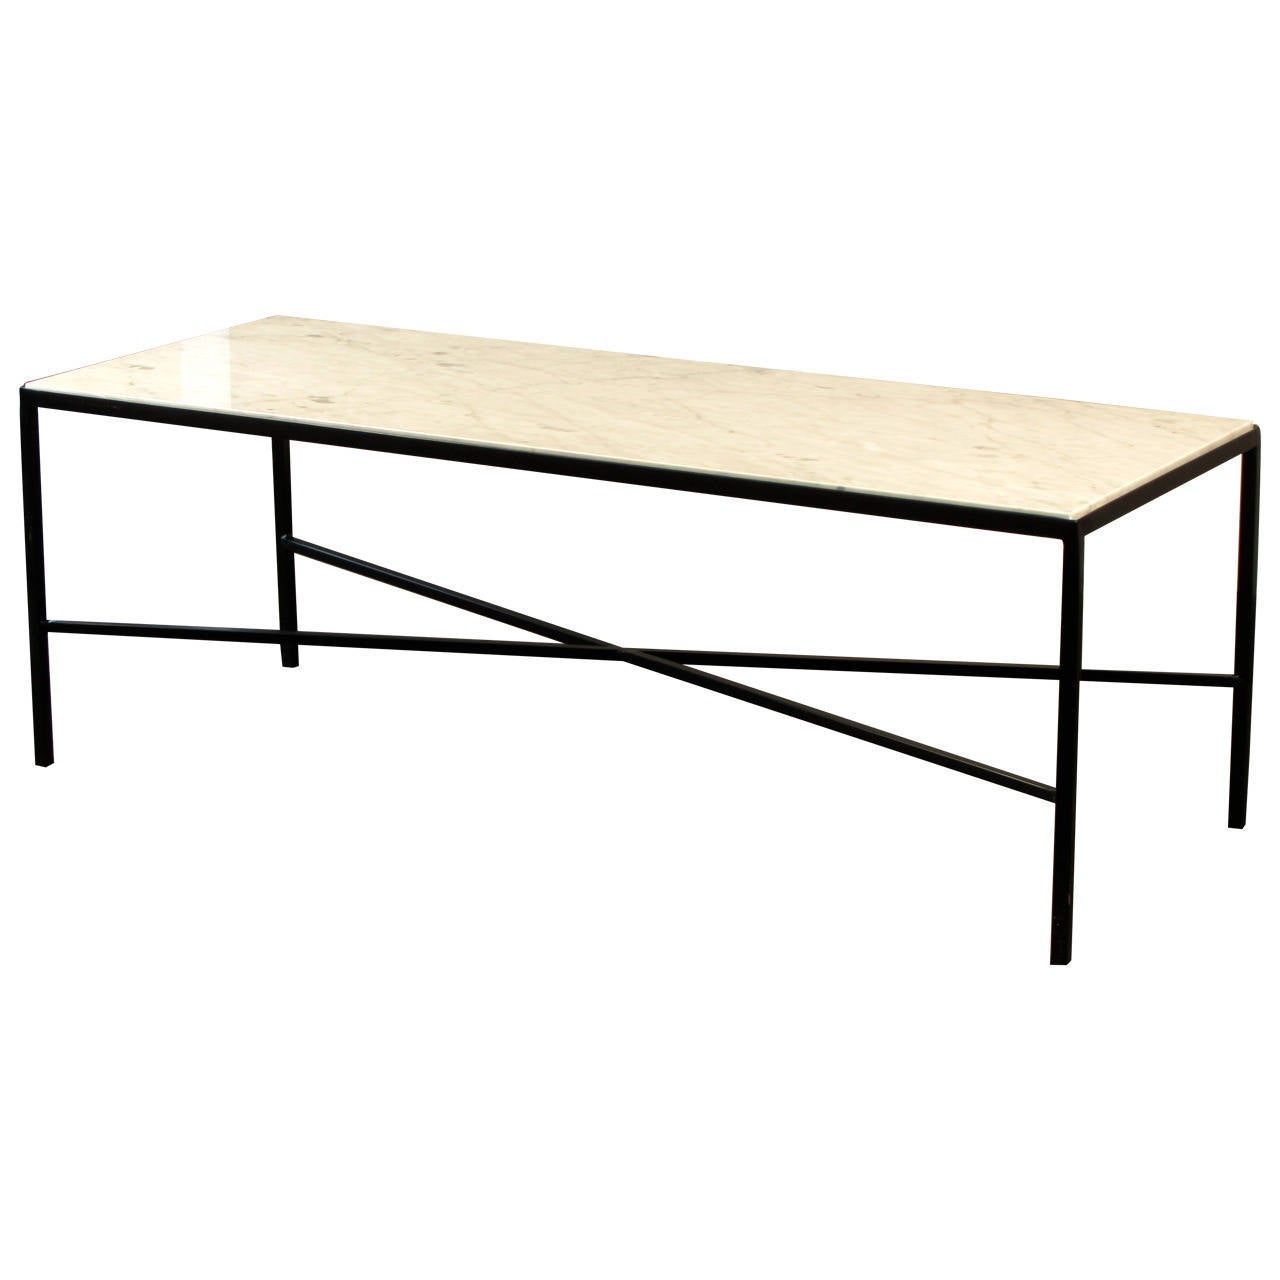 Elegant Wrought Iron And Carrara Marble Coffee Table Stamped French